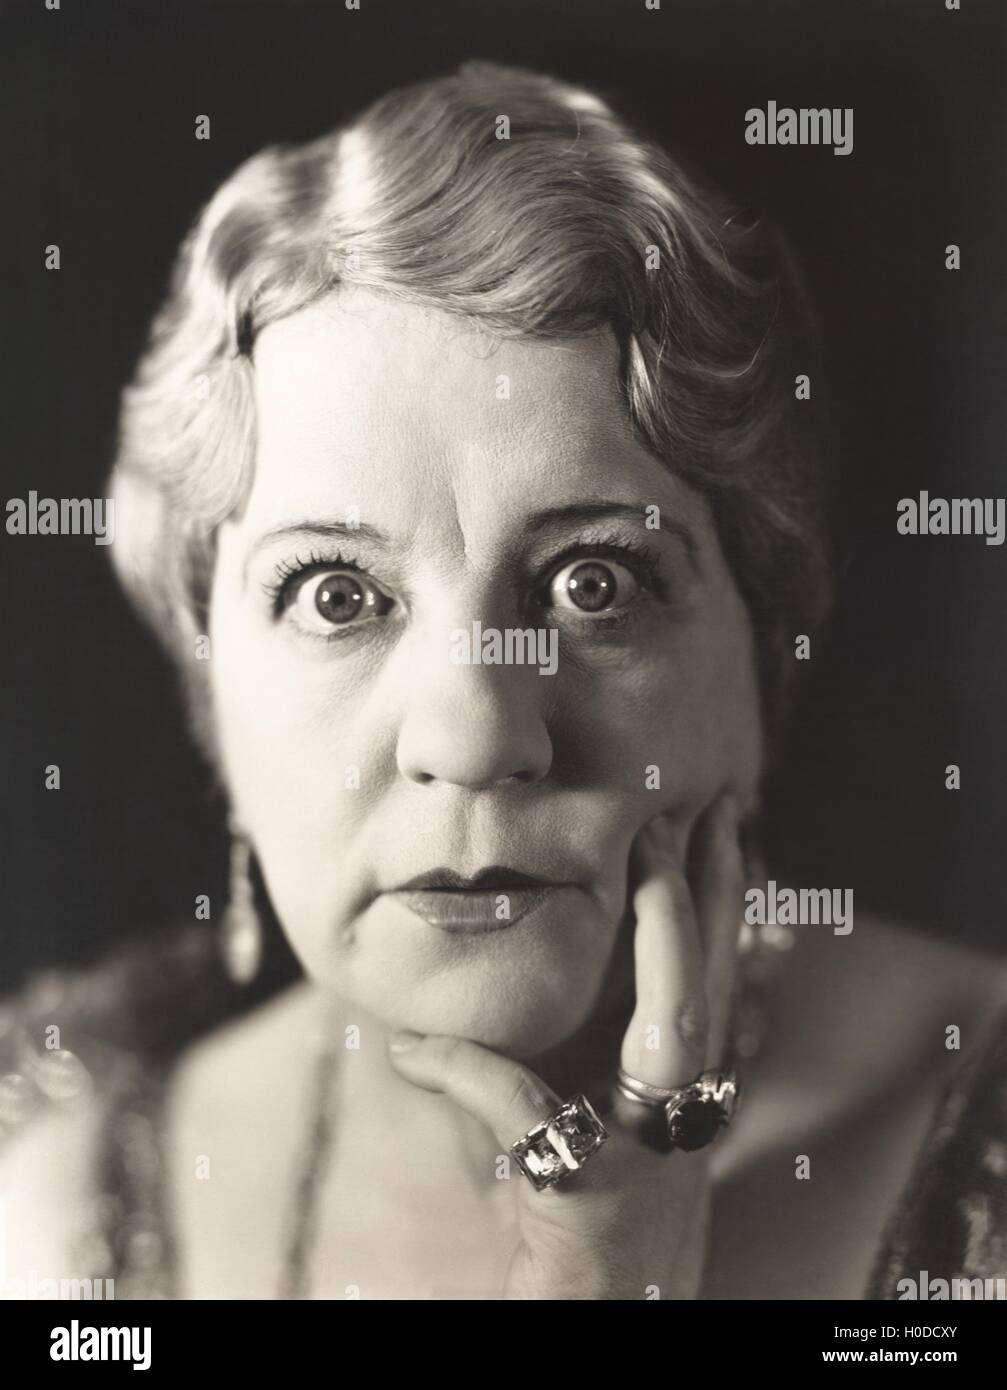 Portrait of wide-eyed woman - Stock Image